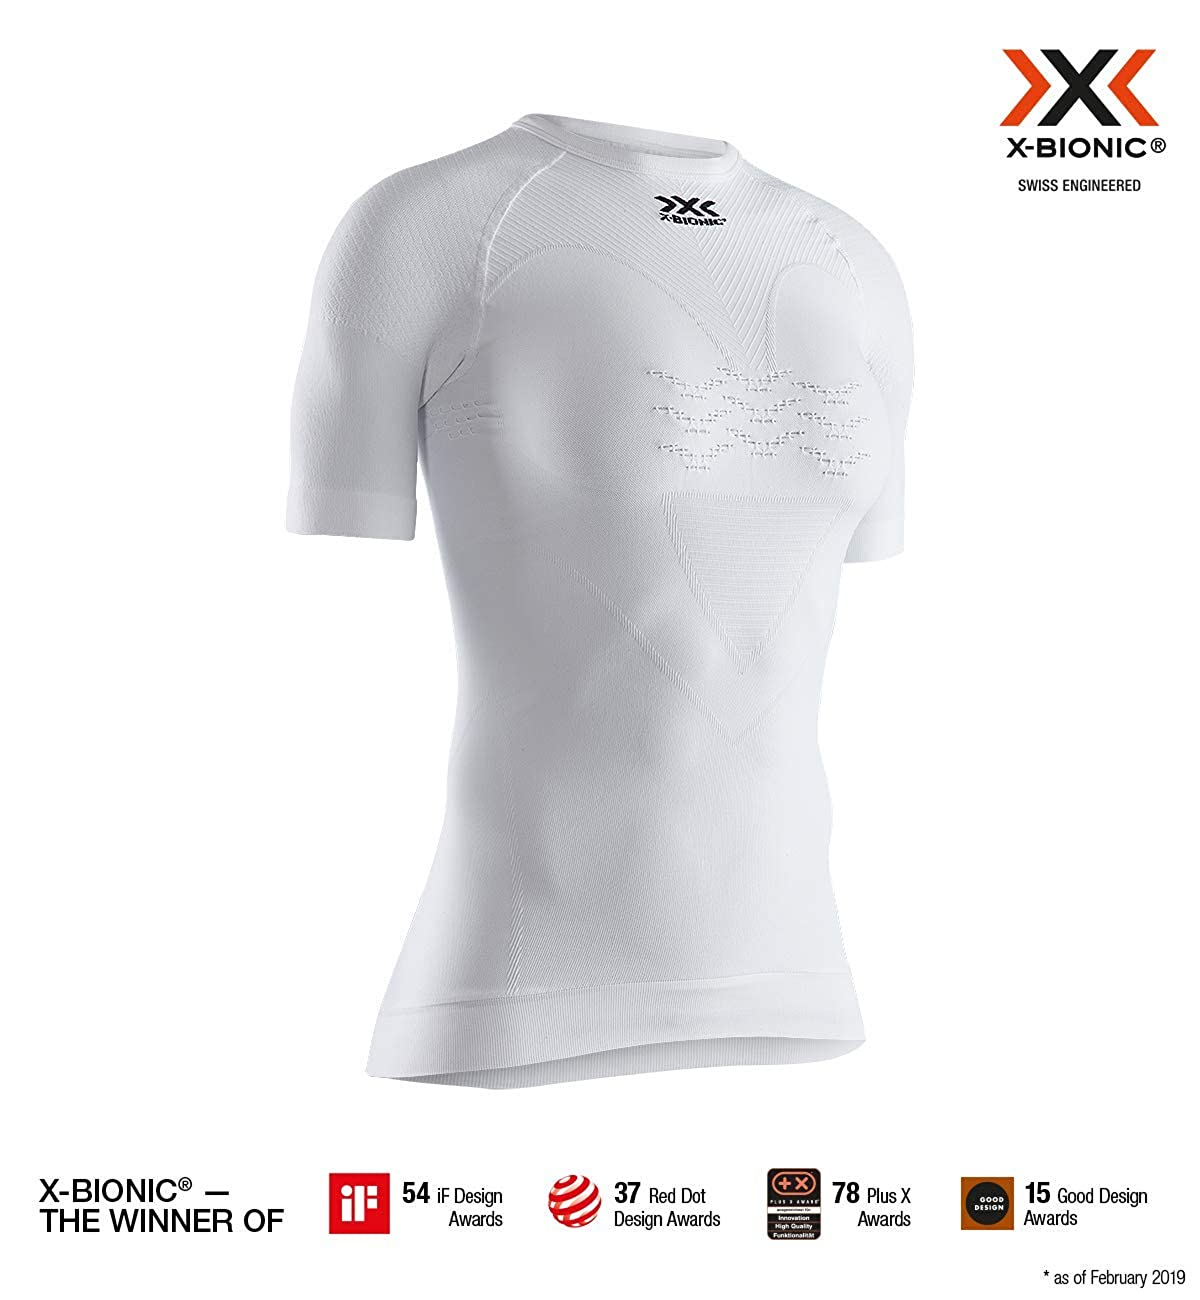 X-Bionic Energizer 4.0 Light Shirt Round Neck Short Sleeve Women